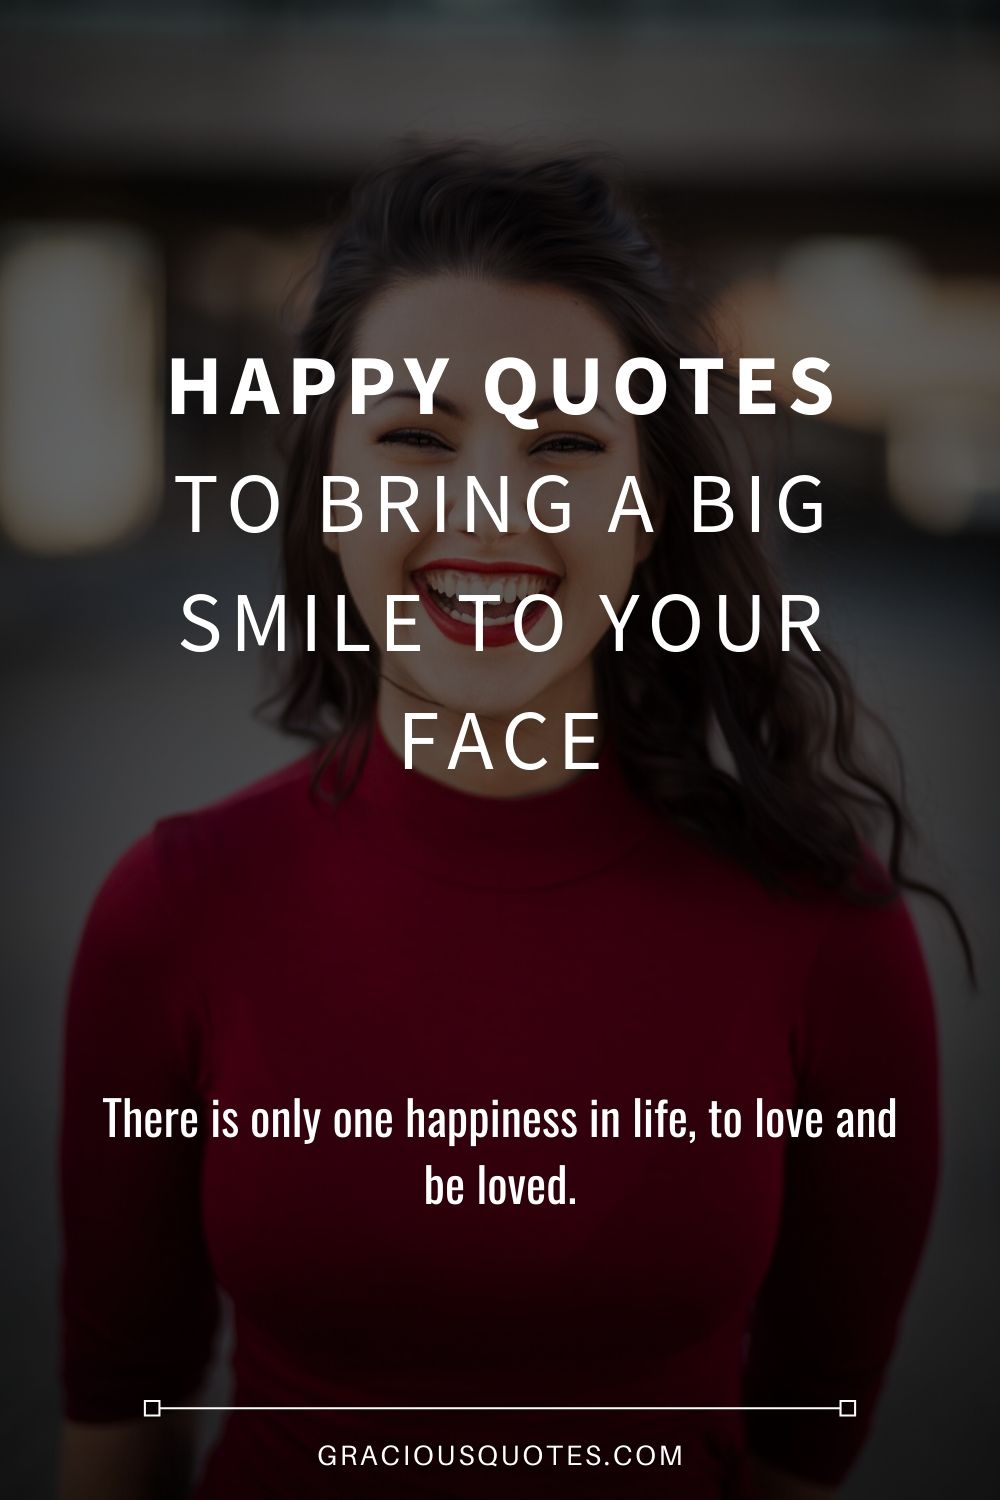 Happy Quotes to Bring a BIG Smile to Your Face - Gracious Quotes